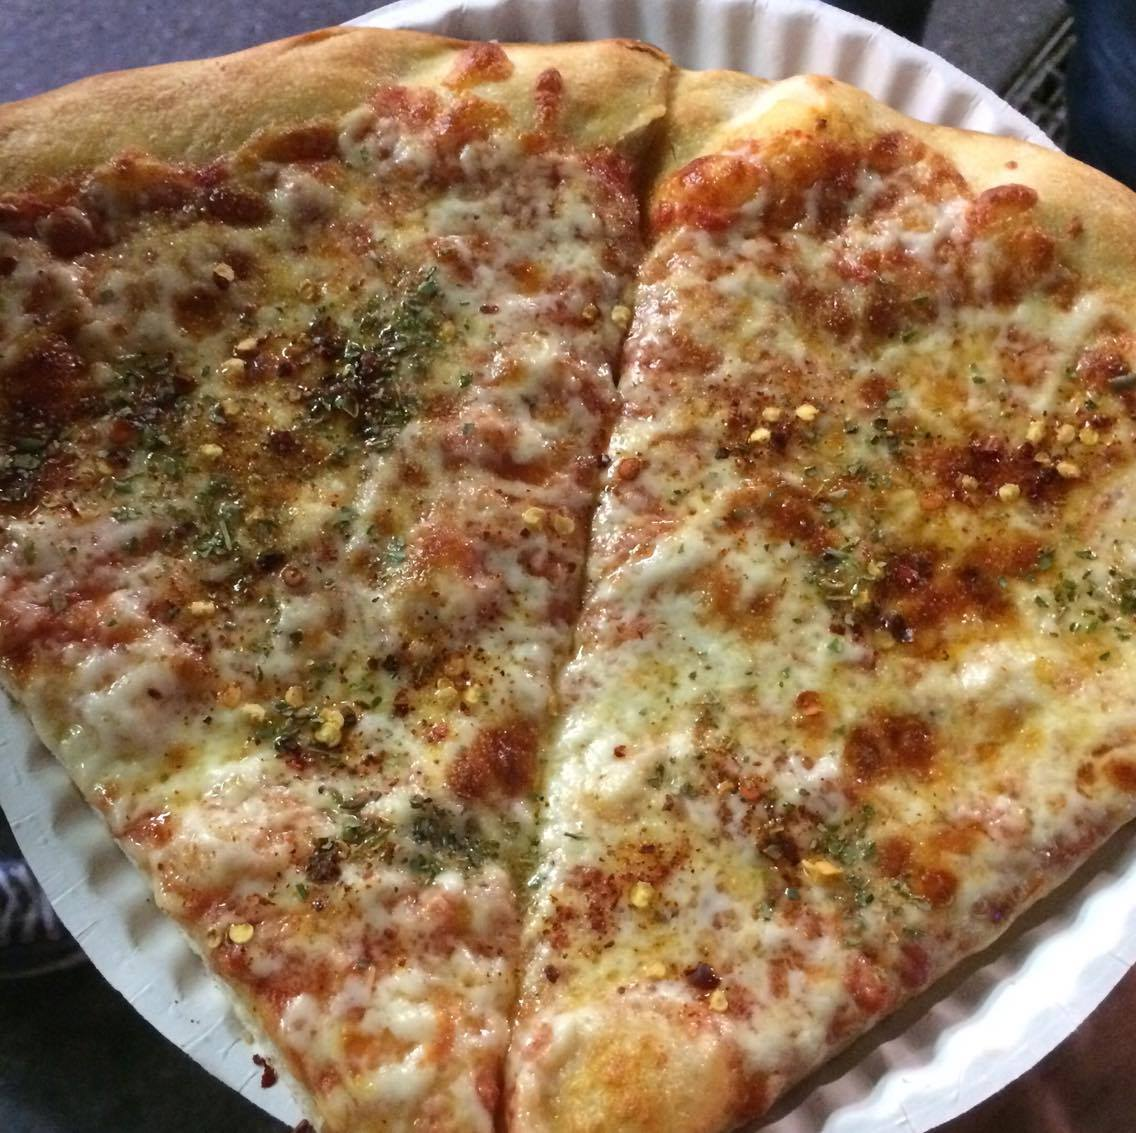 99 Cent Pizza Slices